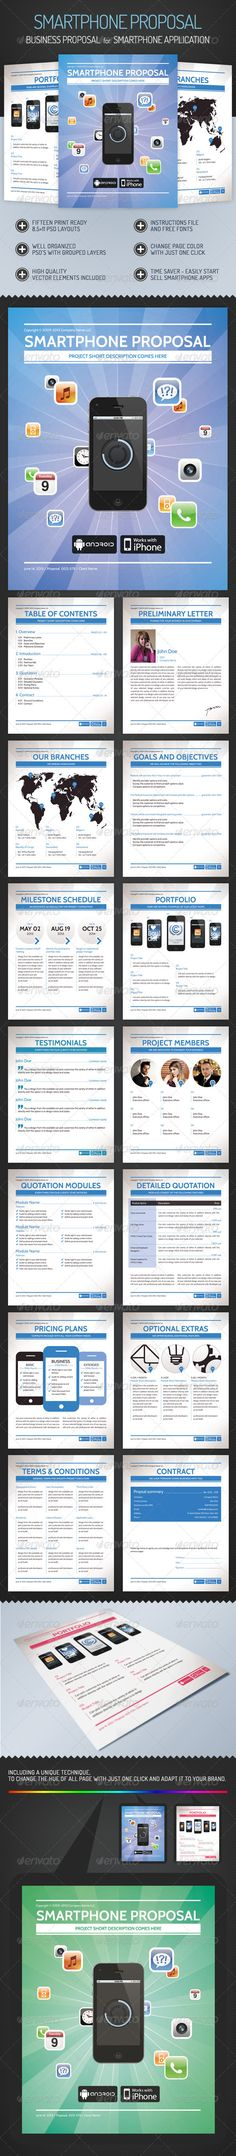 Presentica Business Proposal  Fonts Timeline And Texts